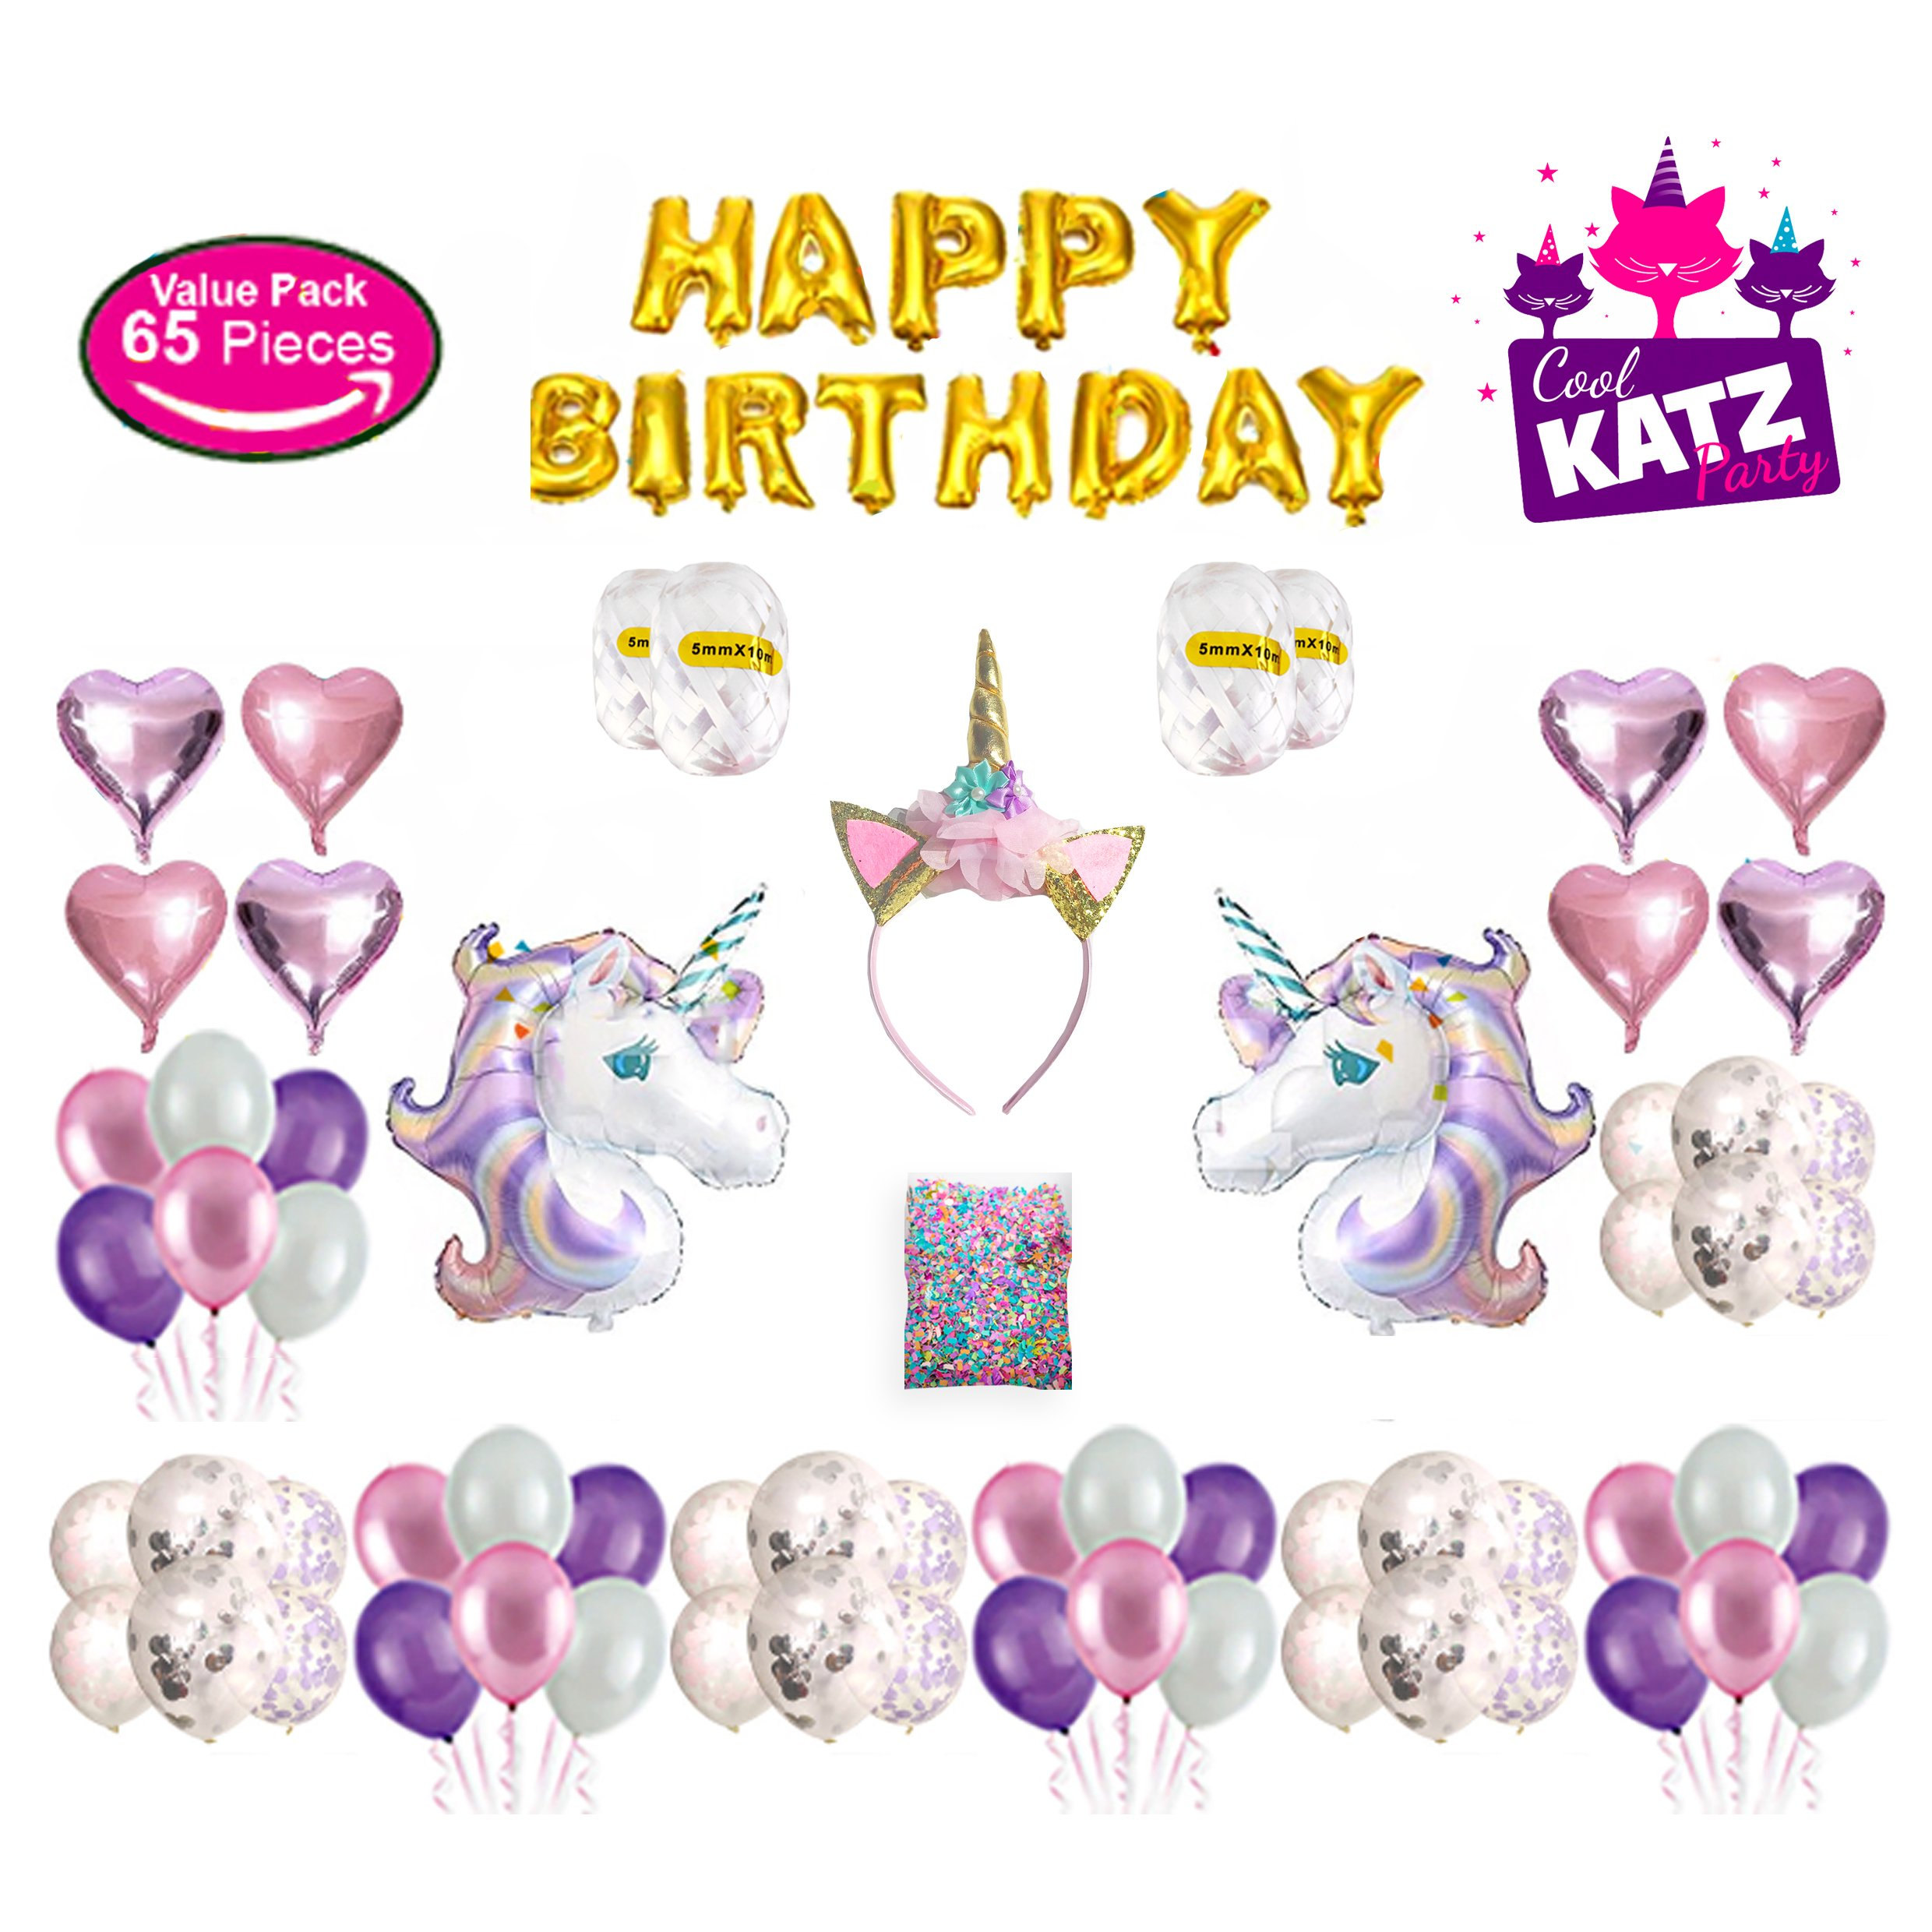 Unicorn Party Supplies Set – All in One Birthday Decorations Unicorns Balloon, Heart Shaped Foil, Confetti, Latex Balloons, Headband, Happy Birthday Card| Party Favors, Gifts for Girls Kids, 65 Pieces by Action One